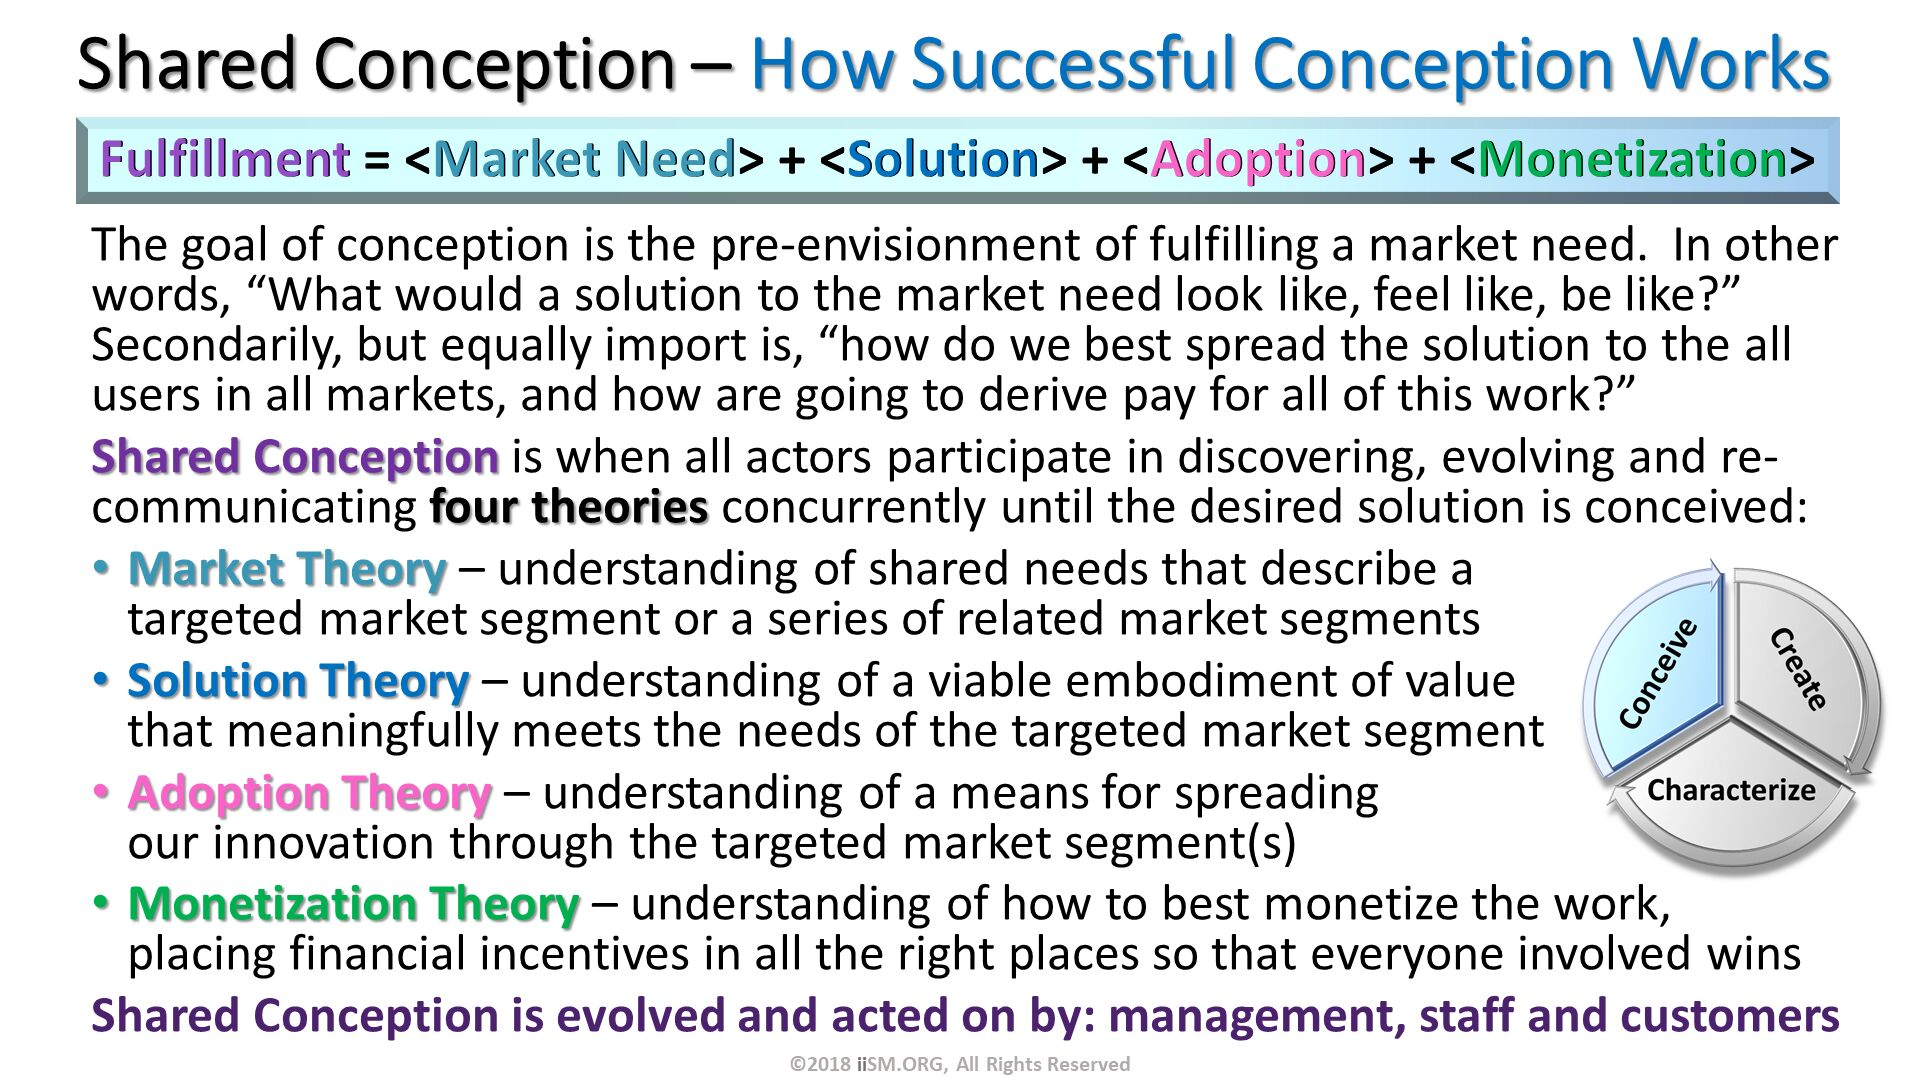 "Shared Conception – How Successful Conception Works. Fulfillment = <Market Need> + <Solution> + <Adoption> + <Monetization>. The goal of conception is the pre-envisionment of fulfilling a market need.  In other words, ""What would a solution to the market need look like, feel like, be like?""  Secondarily, but equally import is, ""how do we best spread the solution to the all users in all markets, and how are going to derive pay for all of this work?"" Shared Conception is when all actors participate in discovering, evolving and re-communicating four theories concurrently until the desired solution is conceived: Market Theory – understanding of shared needs that describe a targeted market segment or a series of related market segments Solution Theory – understanding of a viable embodiment of value that meaningfully meets the needs of the targeted market segment Adoption Theory – understanding of a means for spreadingour innovation through the targeted market segment(s) Monetization Theory – understanding of how to best monetize the work,placing financial incentives in all the right places so that everyone involved wins Shared Conception is evolved and acted on by: management, staff and customers . ©2018 iiSM.ORG, All Rights Reserved."